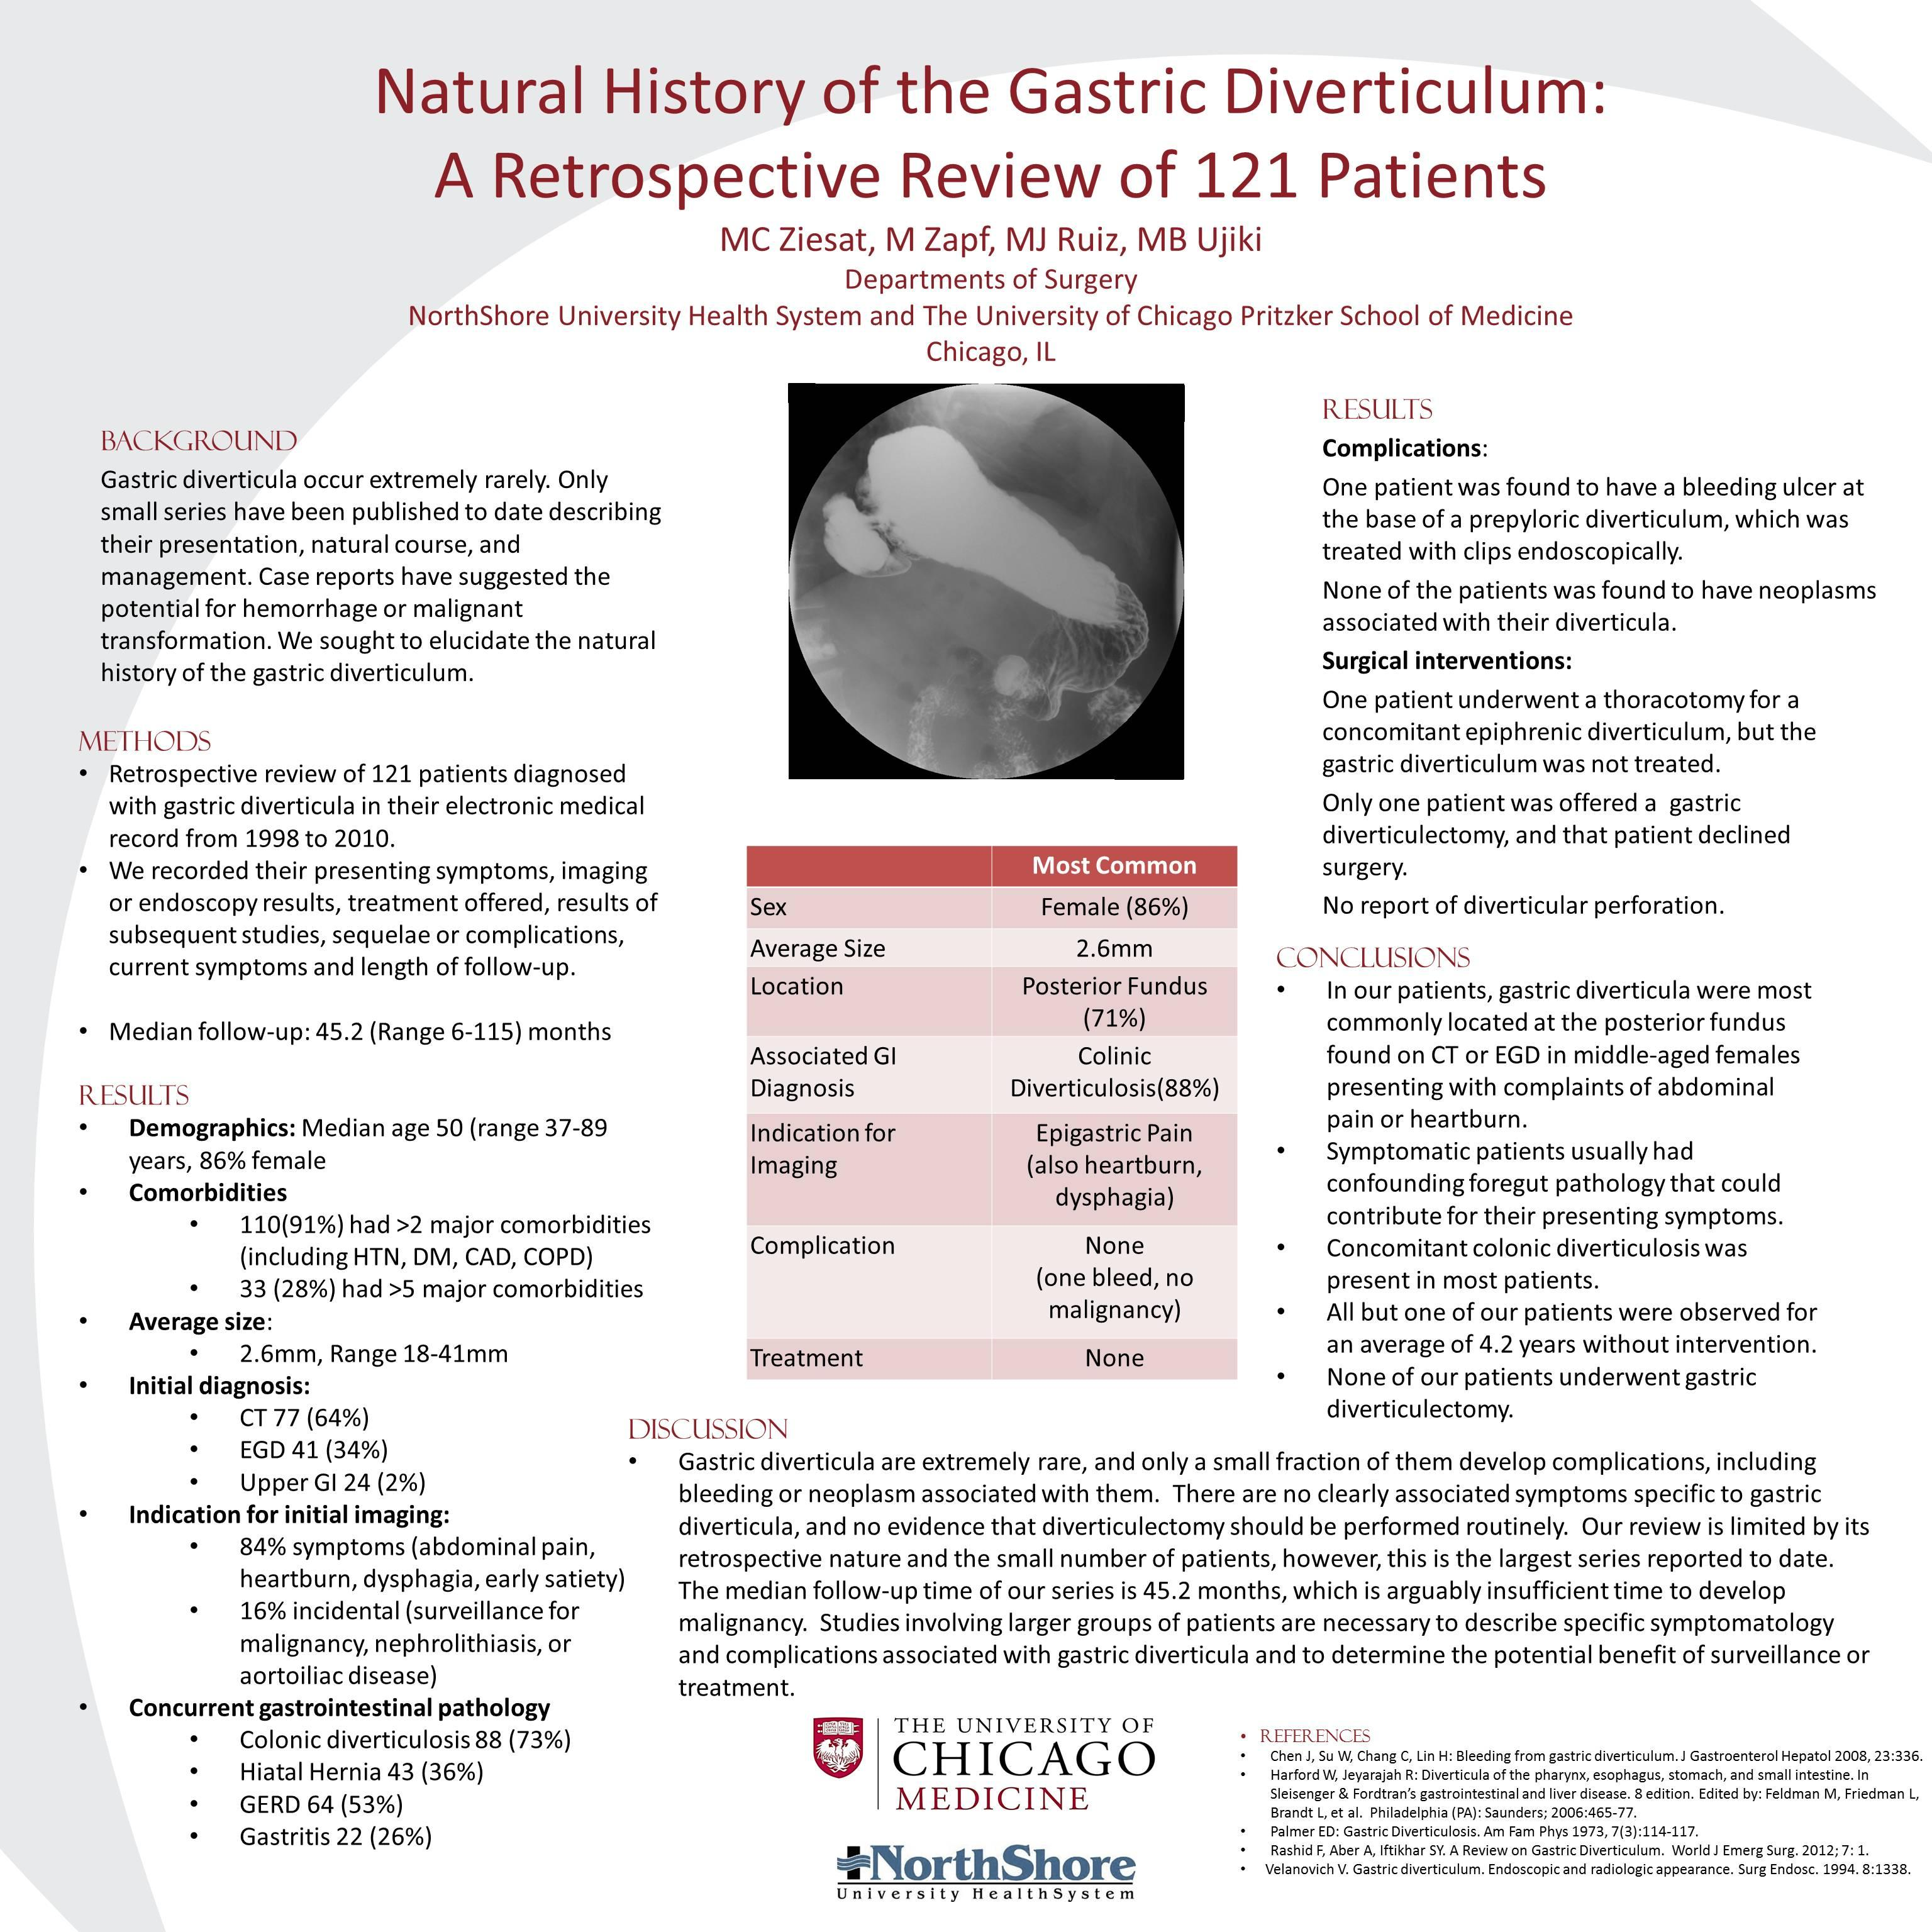 Natural History of the Gastric Diverticulum: A Retrospective Review